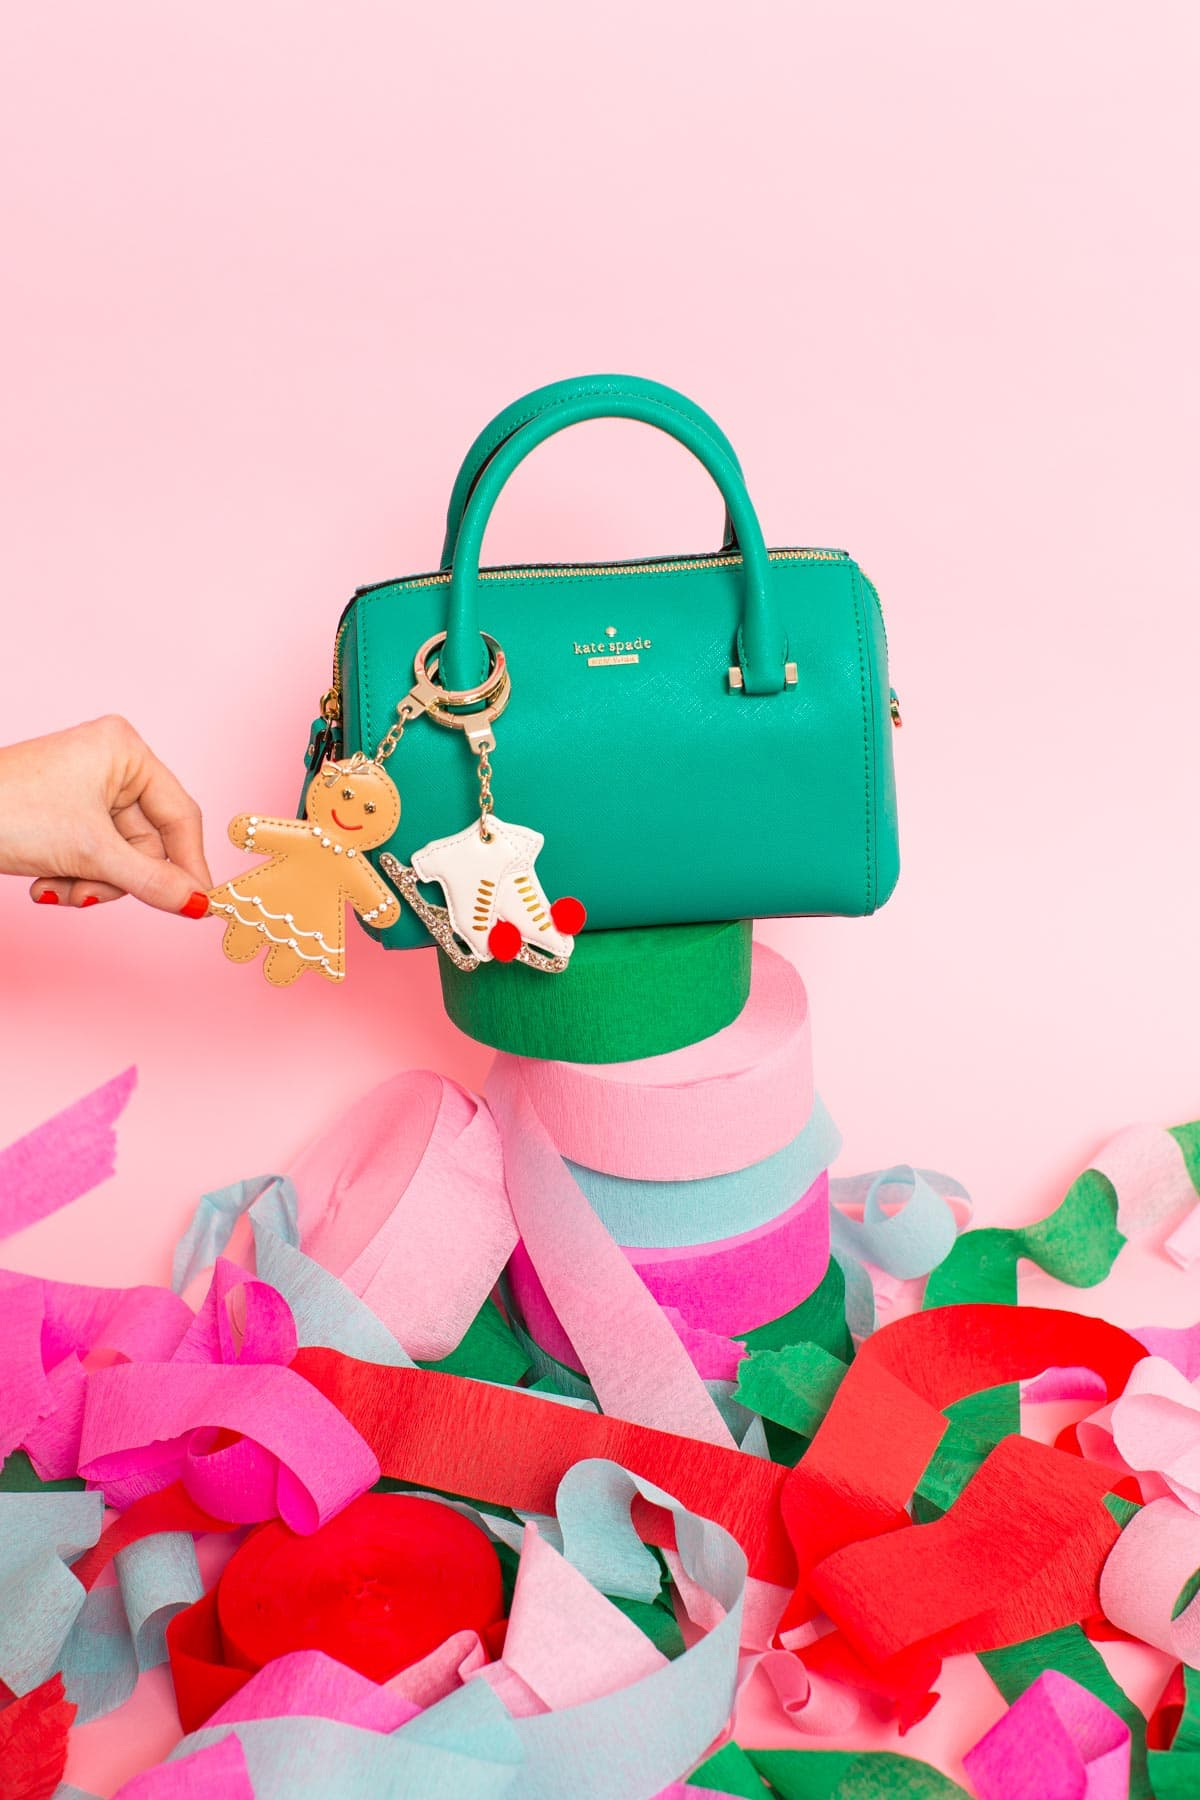 Give It A Twist: Gift Your DIY with Kate Spade! | Sugar & Cloth